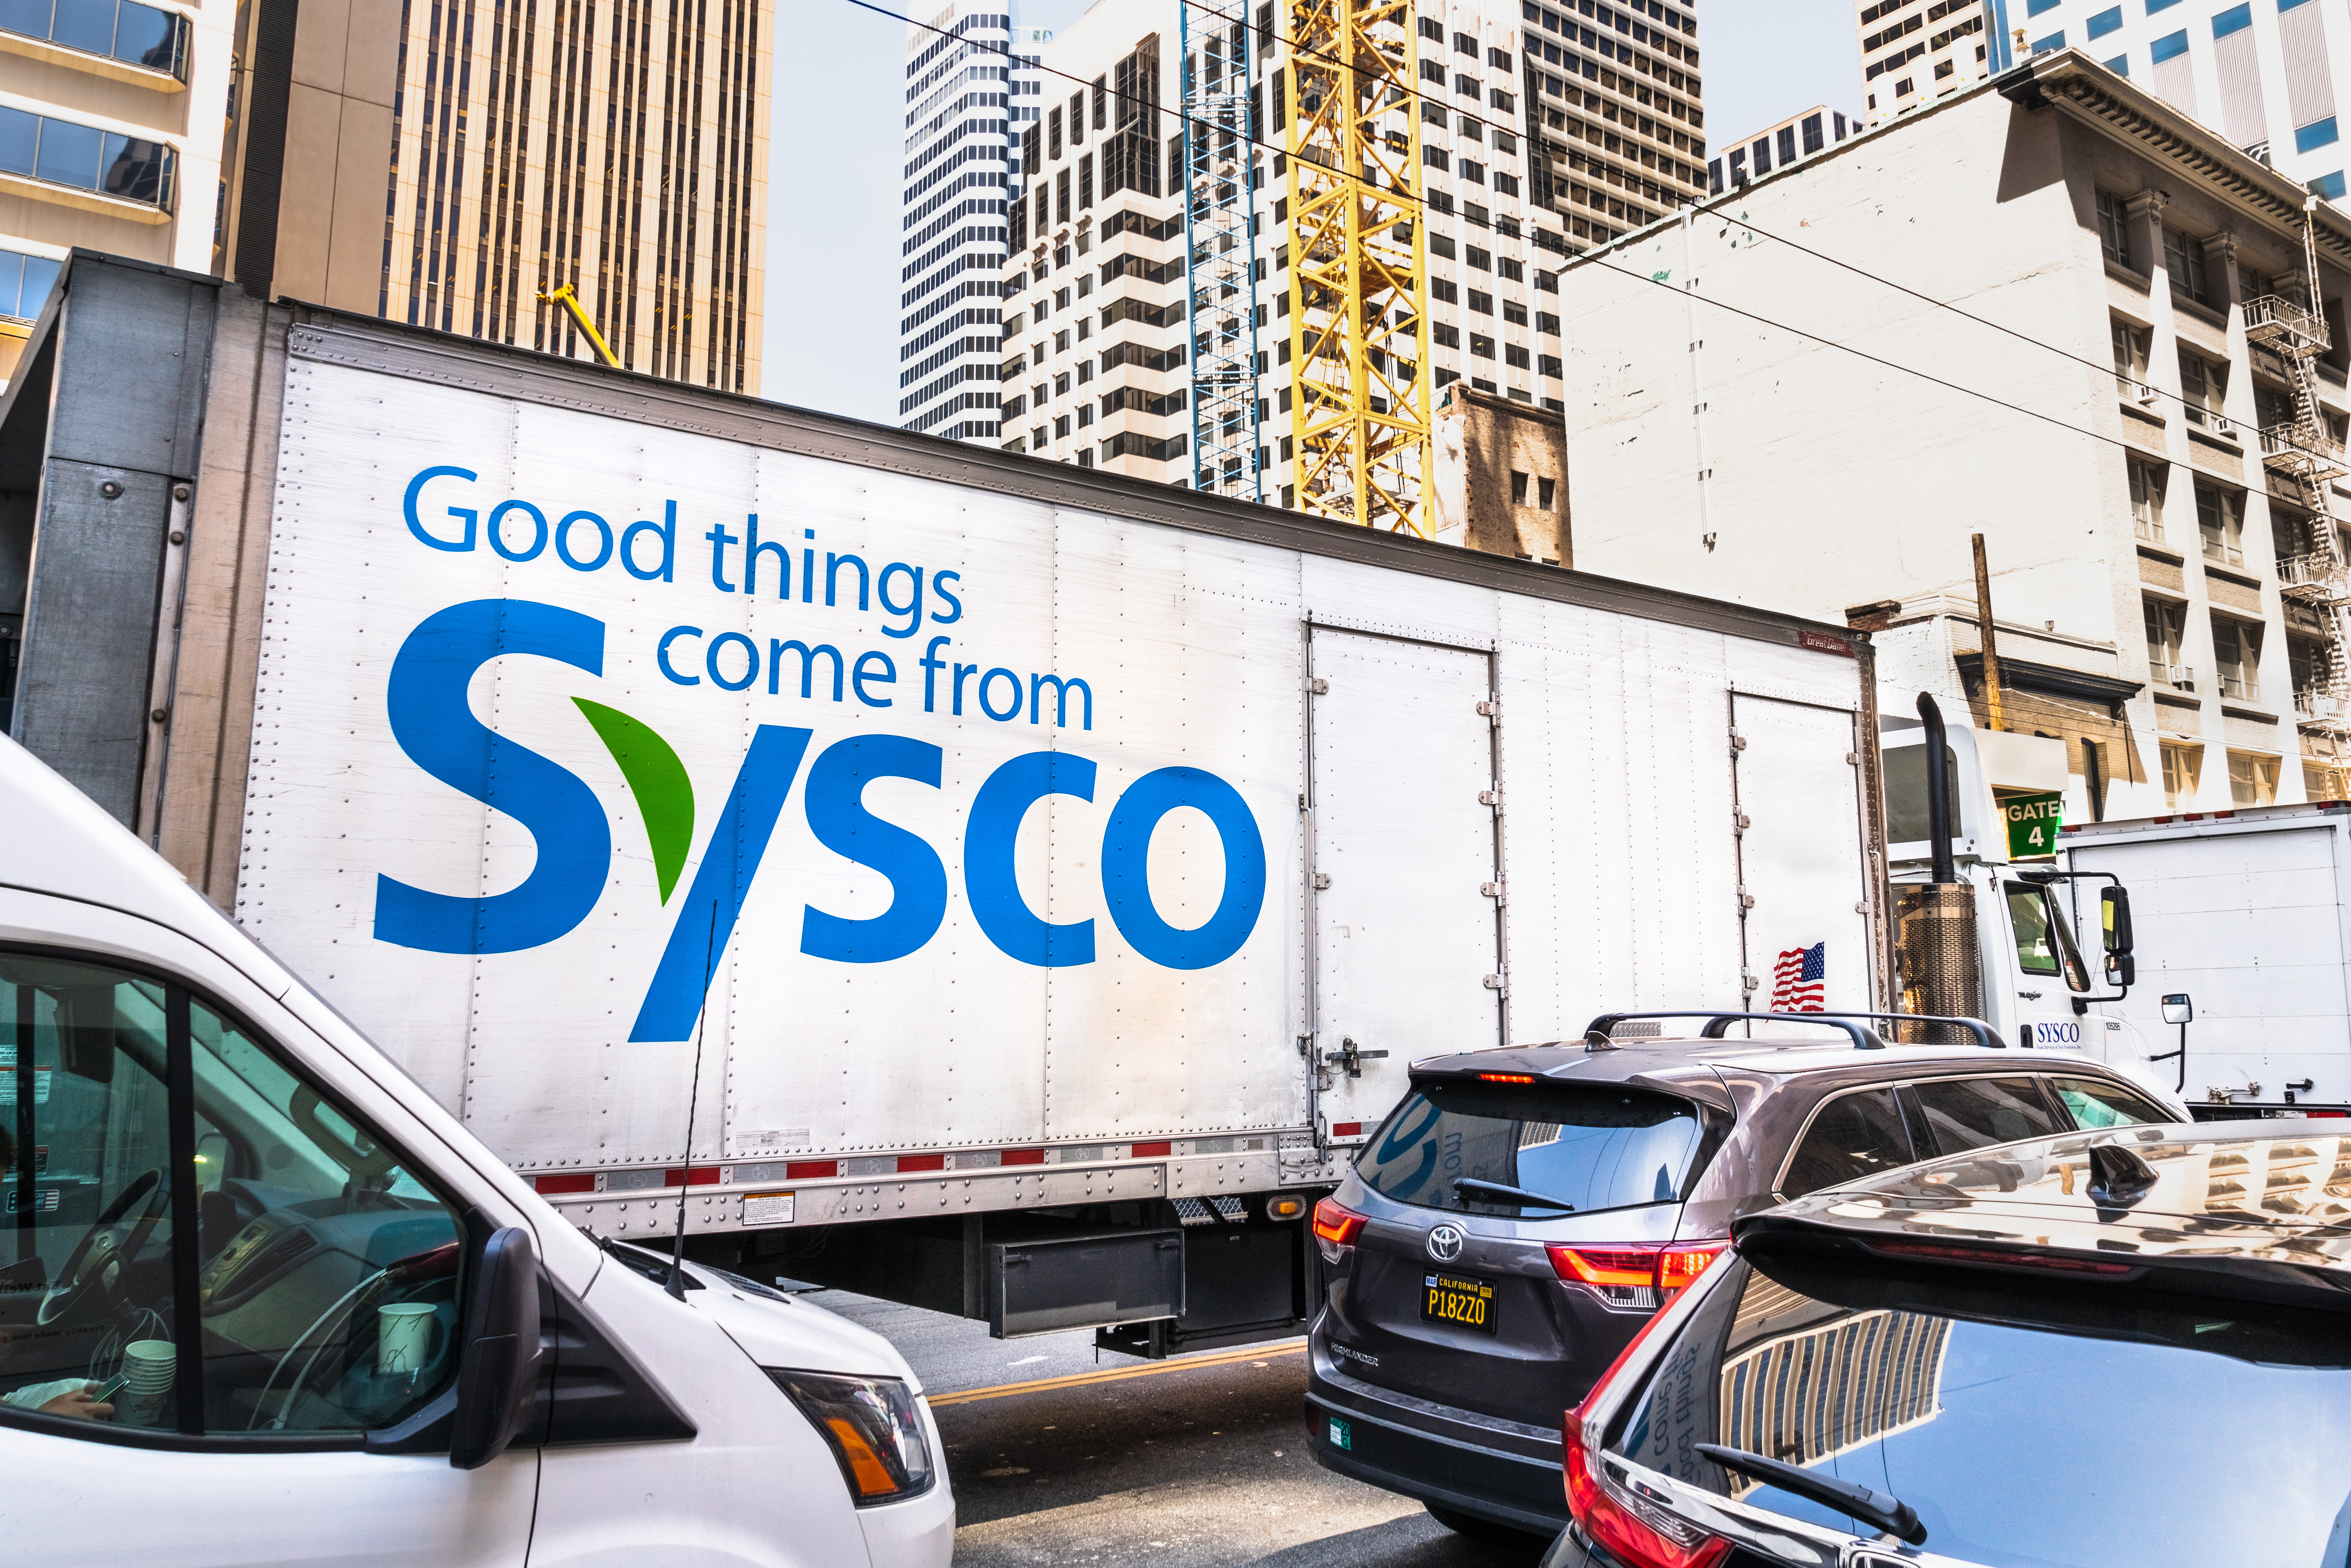 Aug 21, 2019 San Francisco / CA / USA - Sysco truck driving on a street; Sysco Corporation is an American multinational distributor of food and related products primarily to the food-service industry